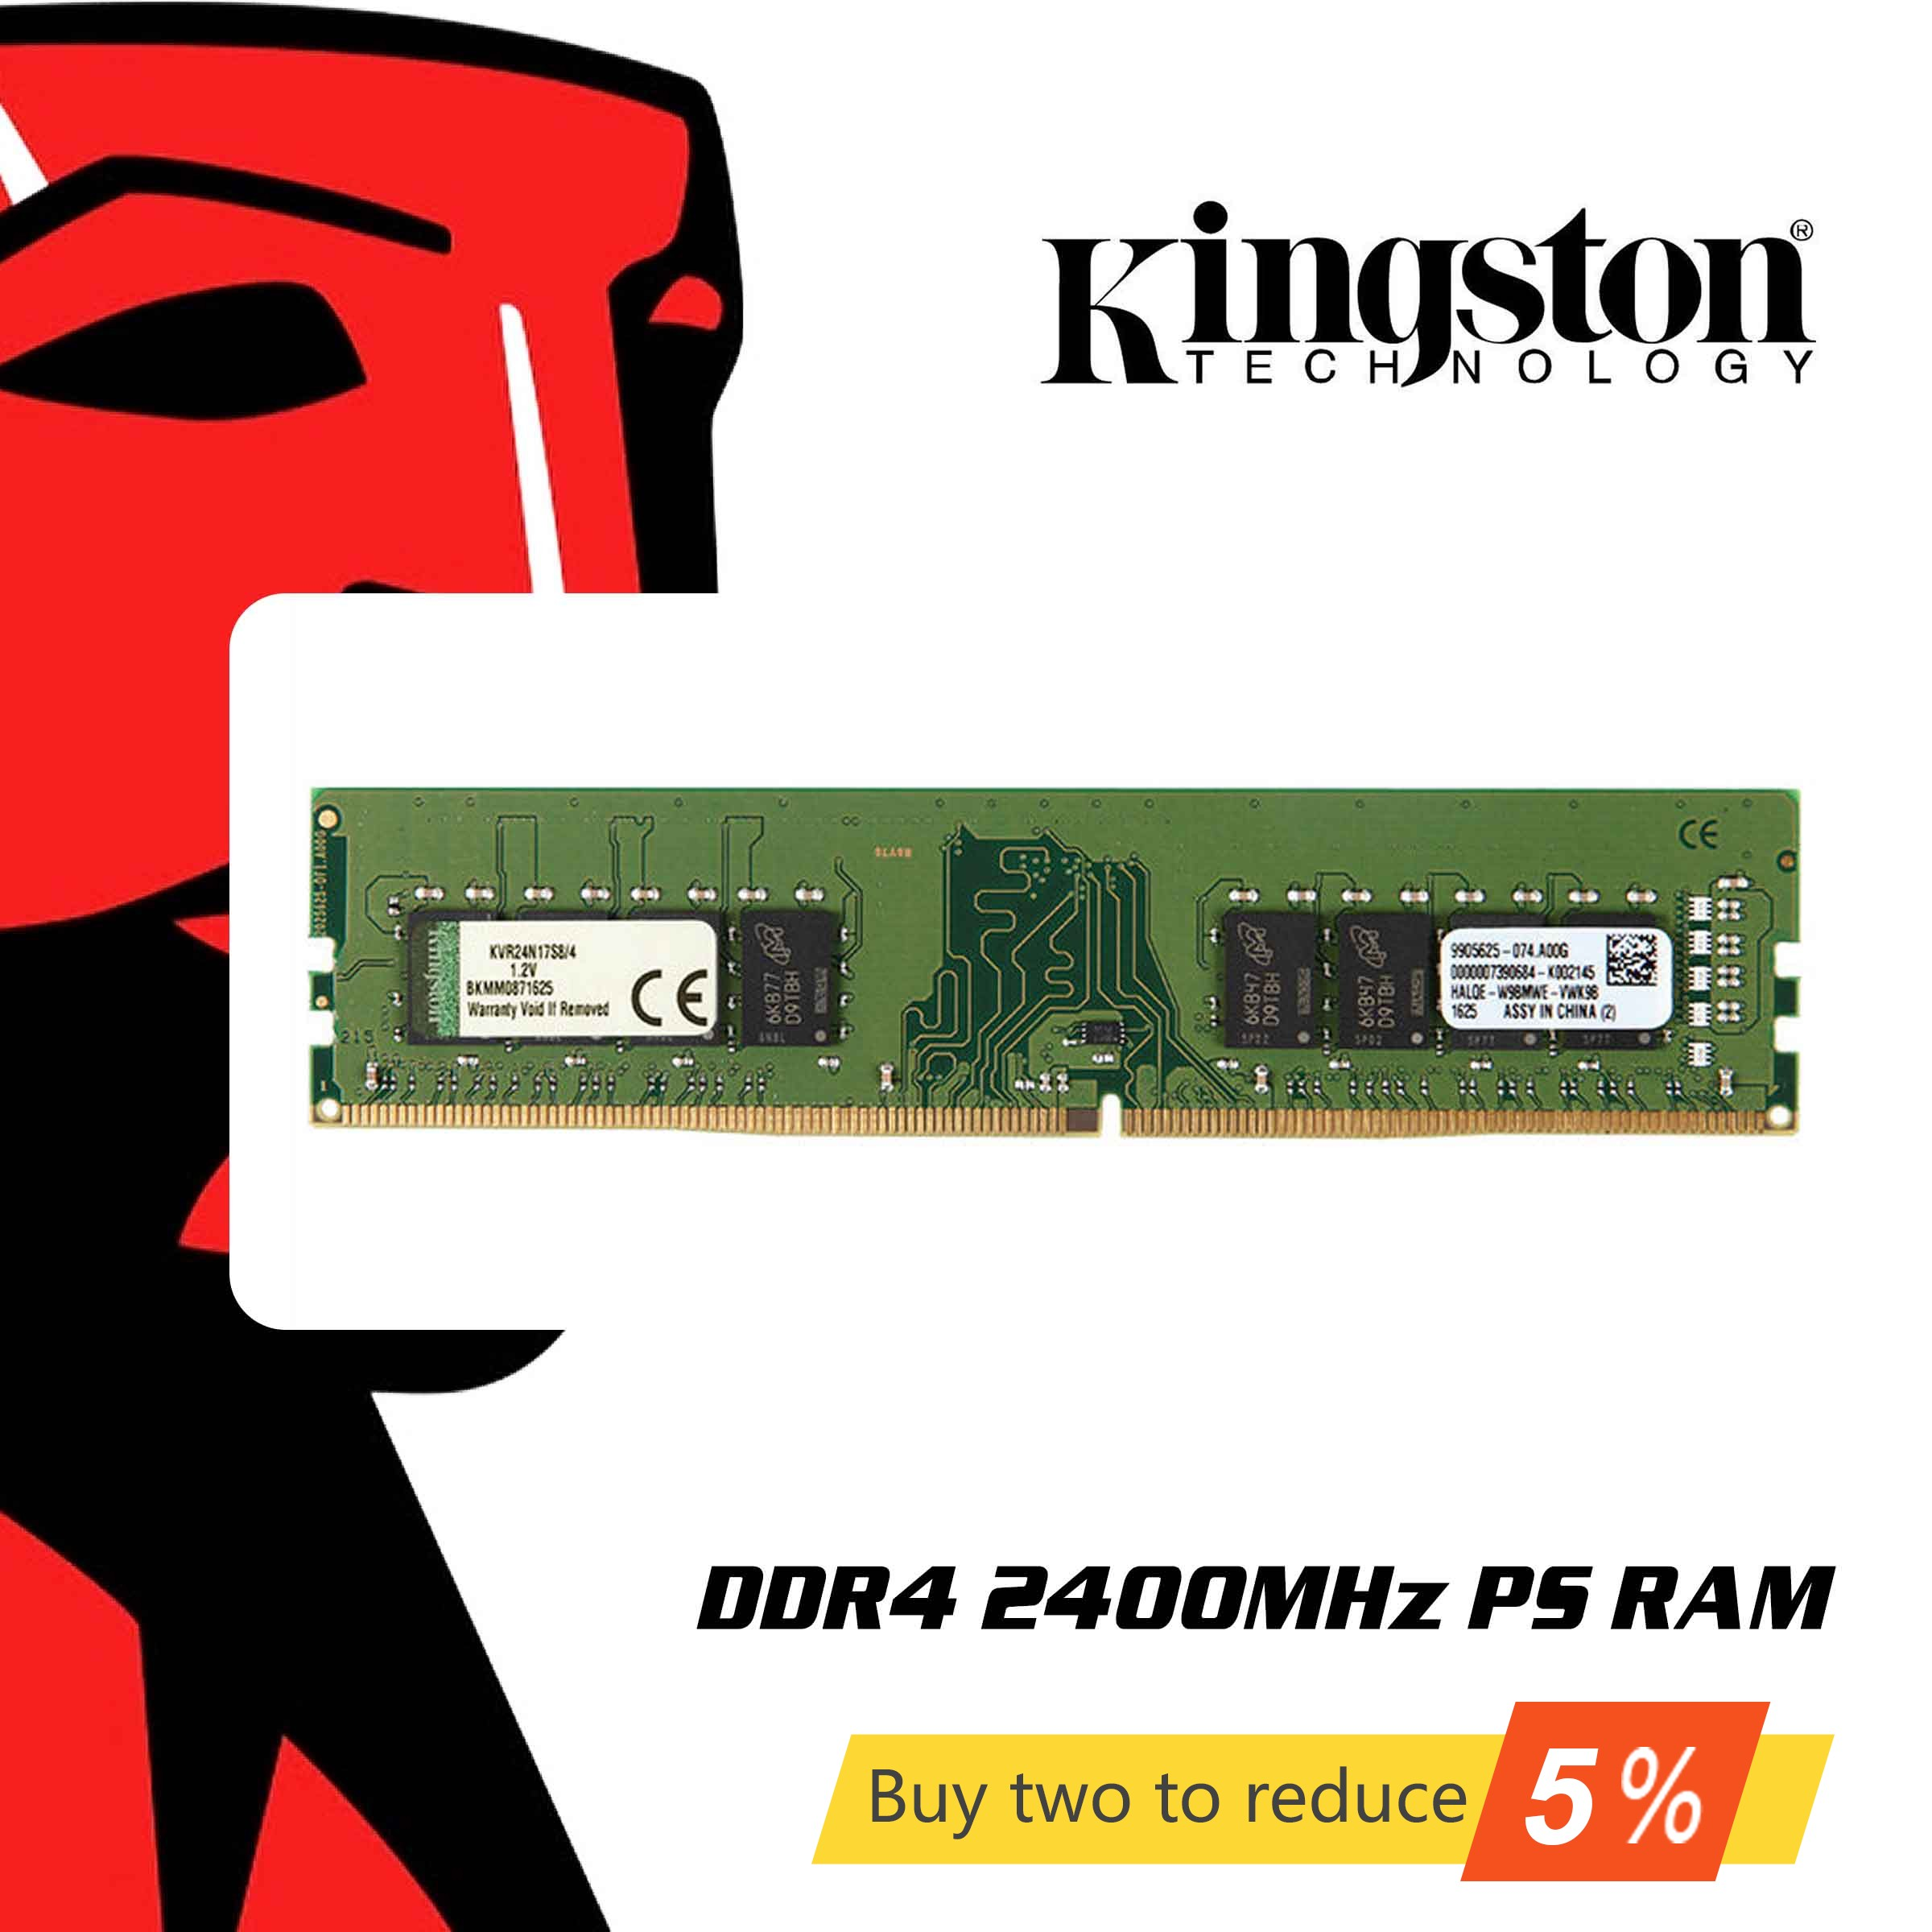 Original Kingston <font><b>DDR4</b></font> RAM Memory <font><b>8GB</b></font> 4GB 16GB 2400Mhz <font><b>Memoria</b></font> DDR 4 8 16 Gigabytes Gigs Sticks for Desktop PC <font><b>Notebook</b></font> Laptop image